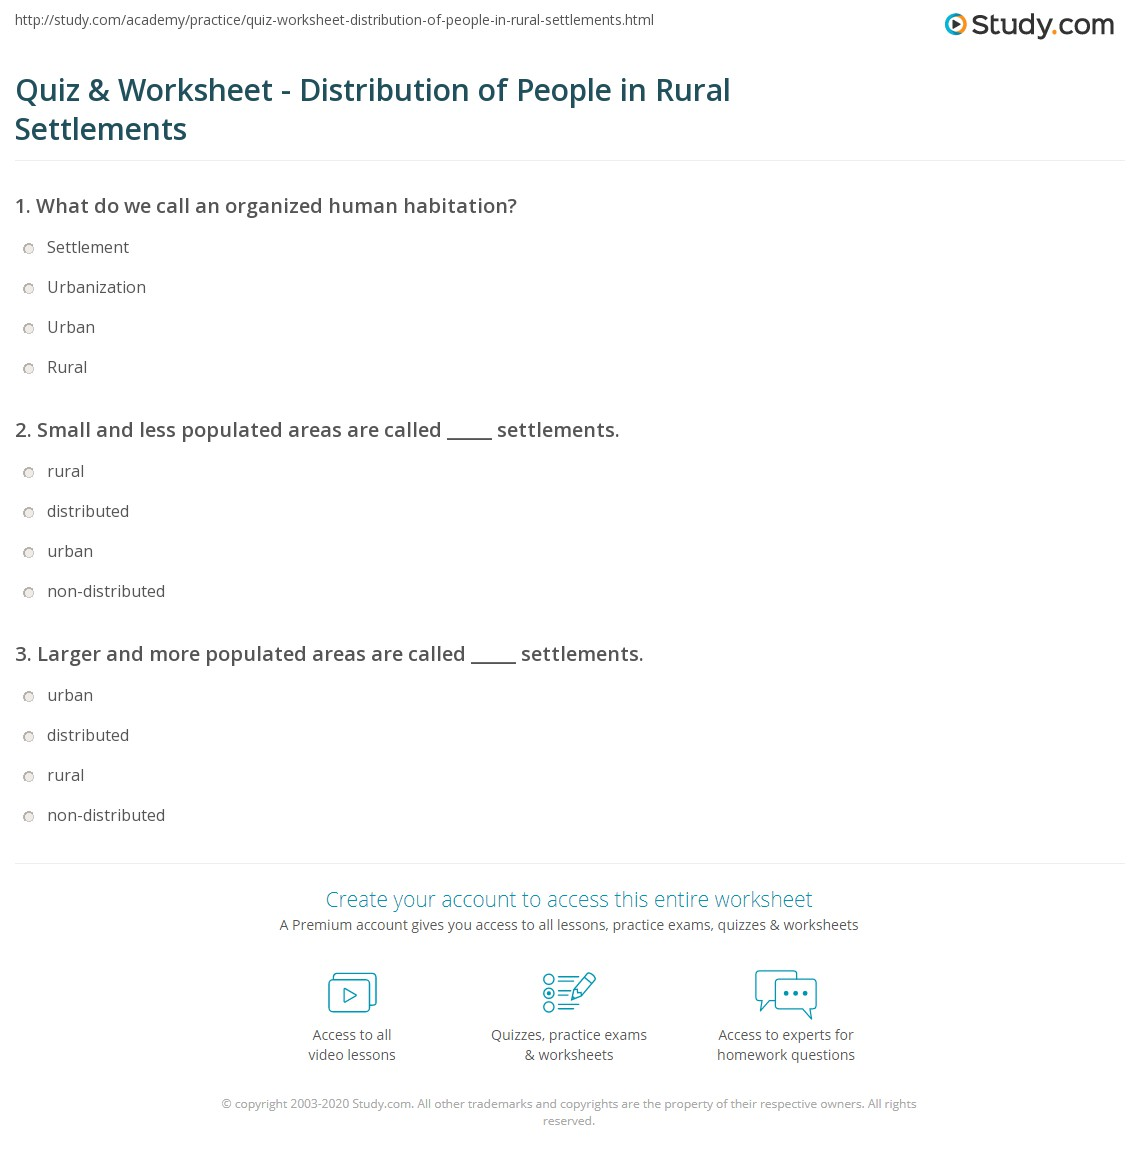 Quiz Worksheet Distribution Of People In Rural Settlements